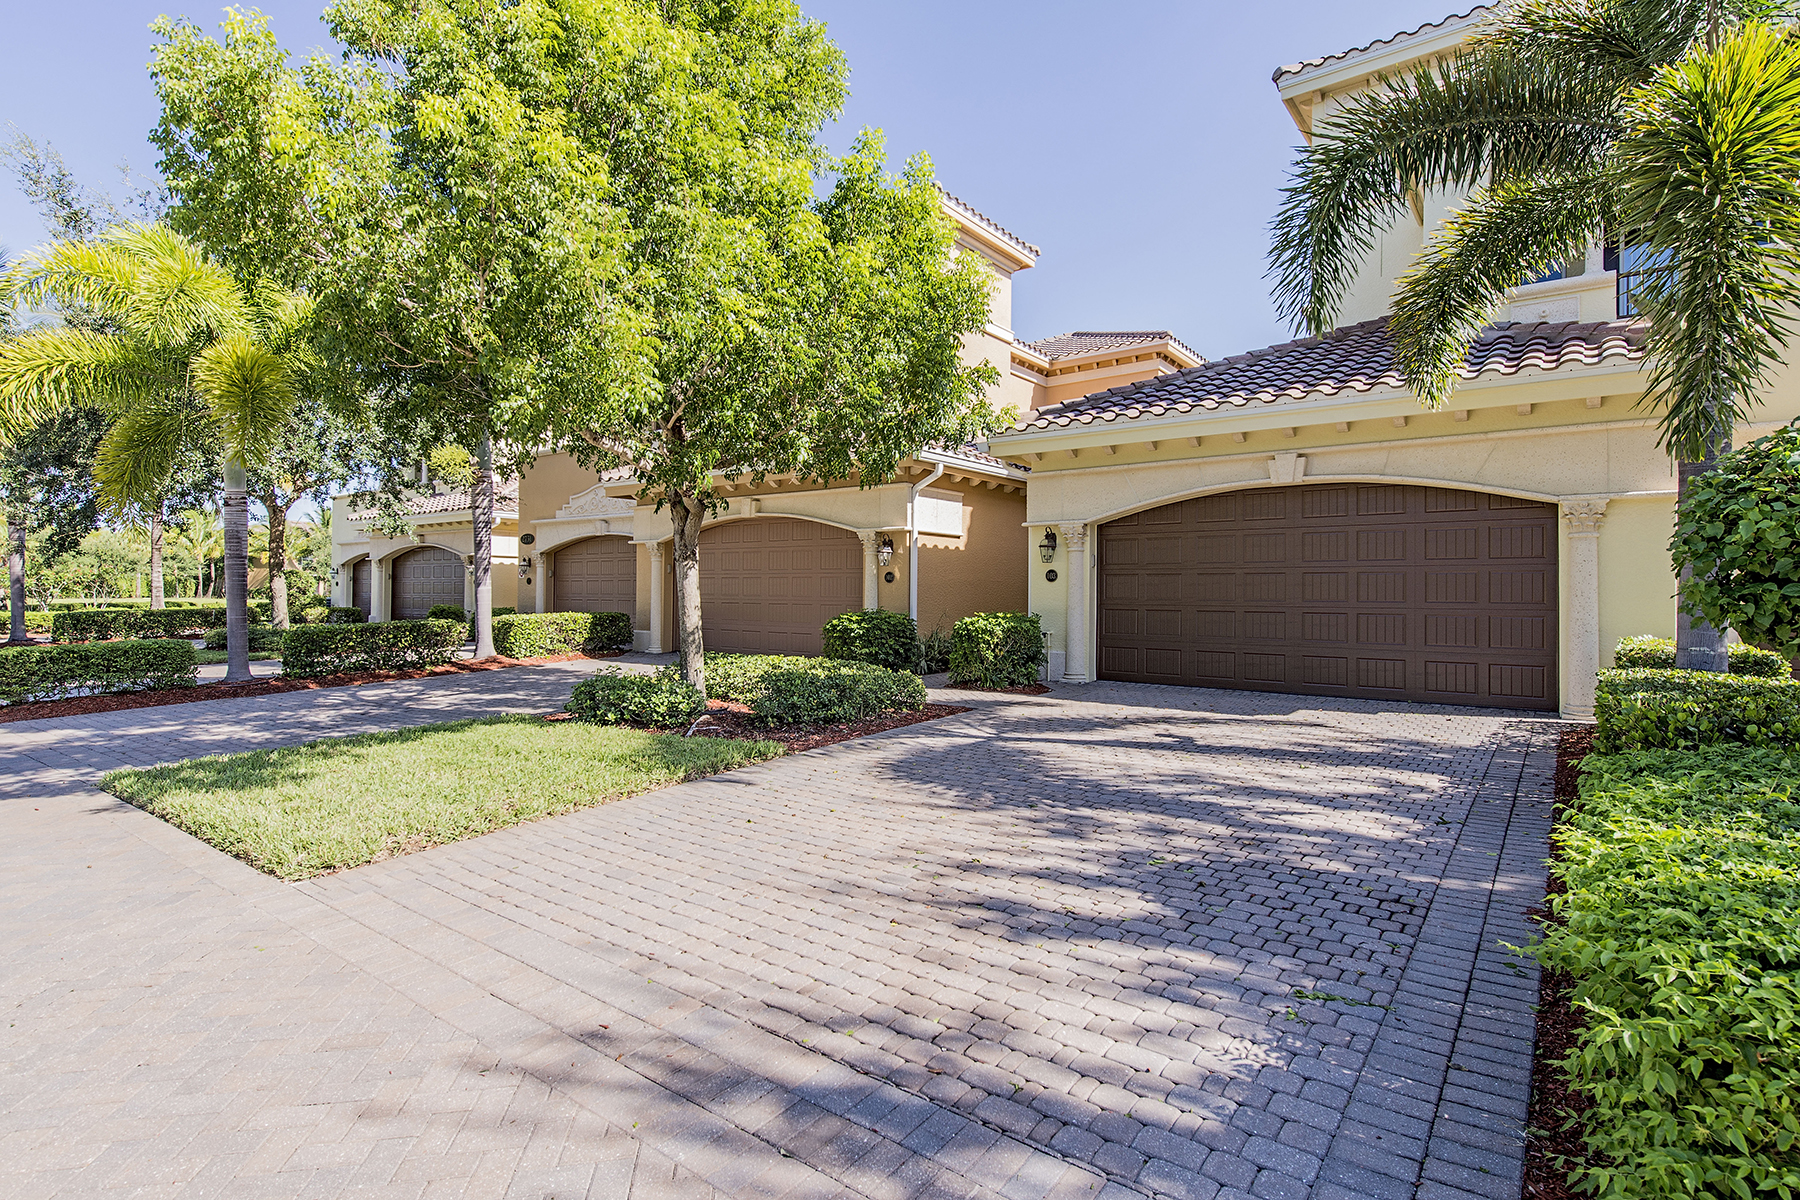 Property For Sale at FIDDLER'S CREEK - CALISTA